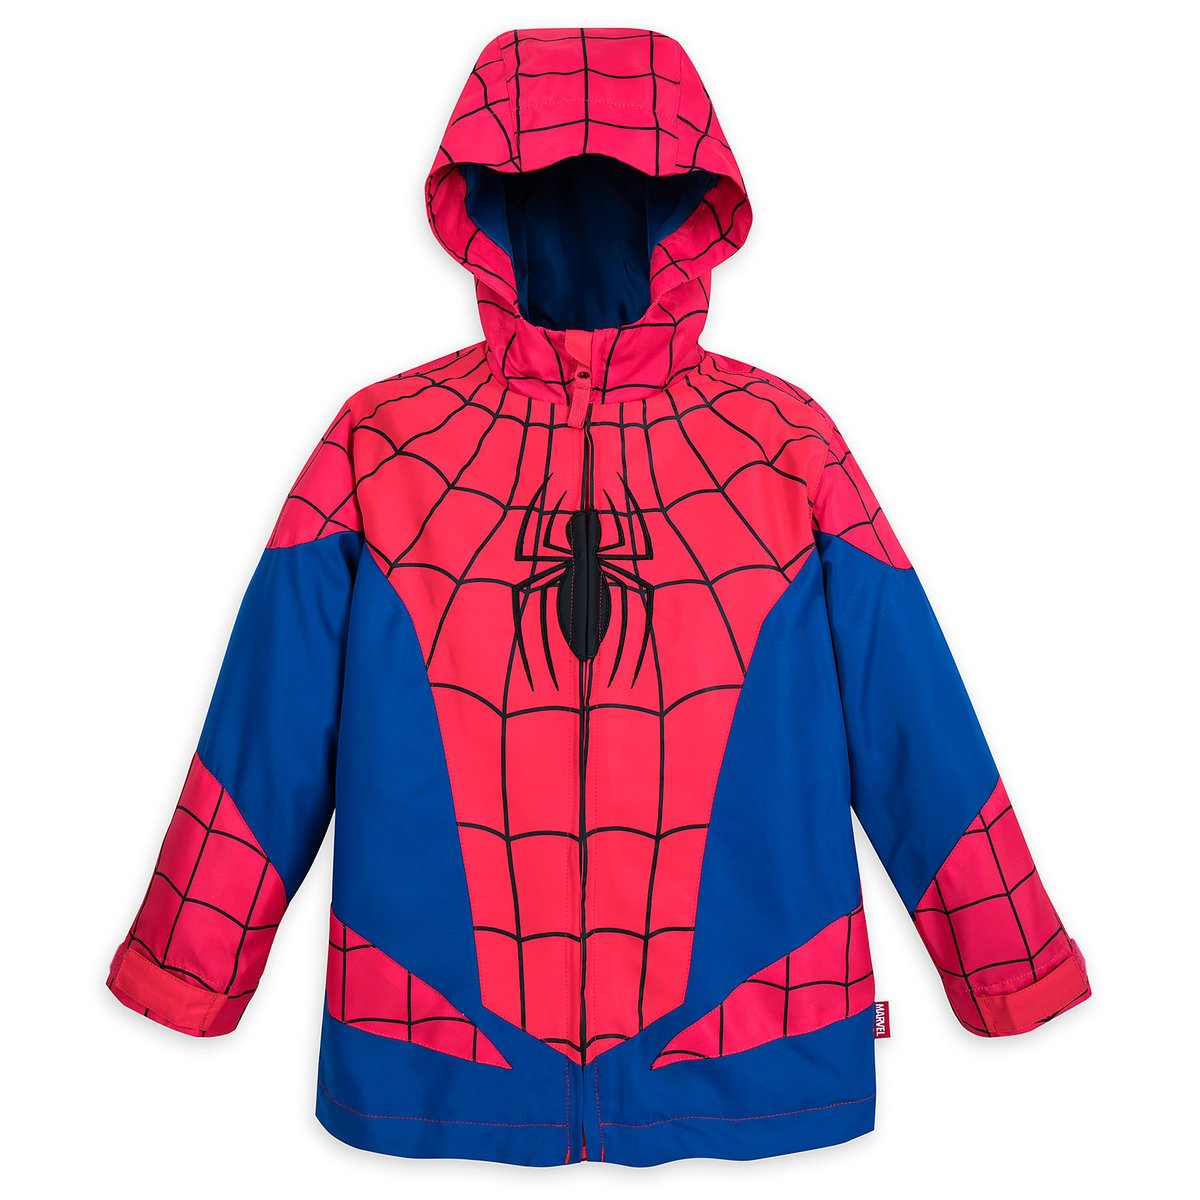 Disney Store Deluxe Spider Man Spiderman Rain Jacket Coat Vest Small 5-6 5T